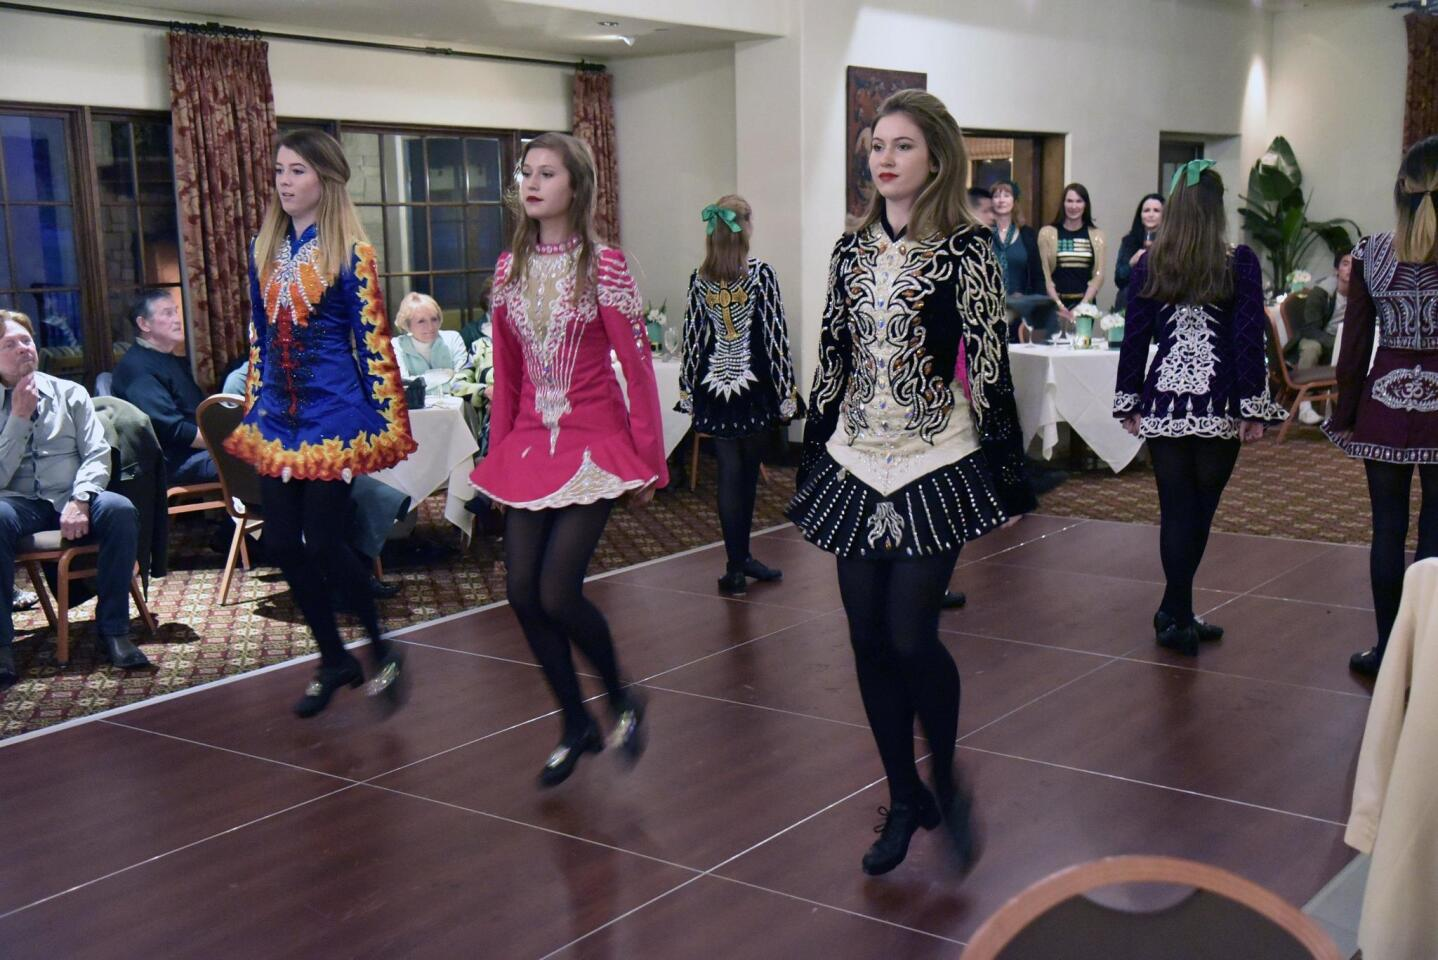 Clan Rince Irish Dance Studio performers